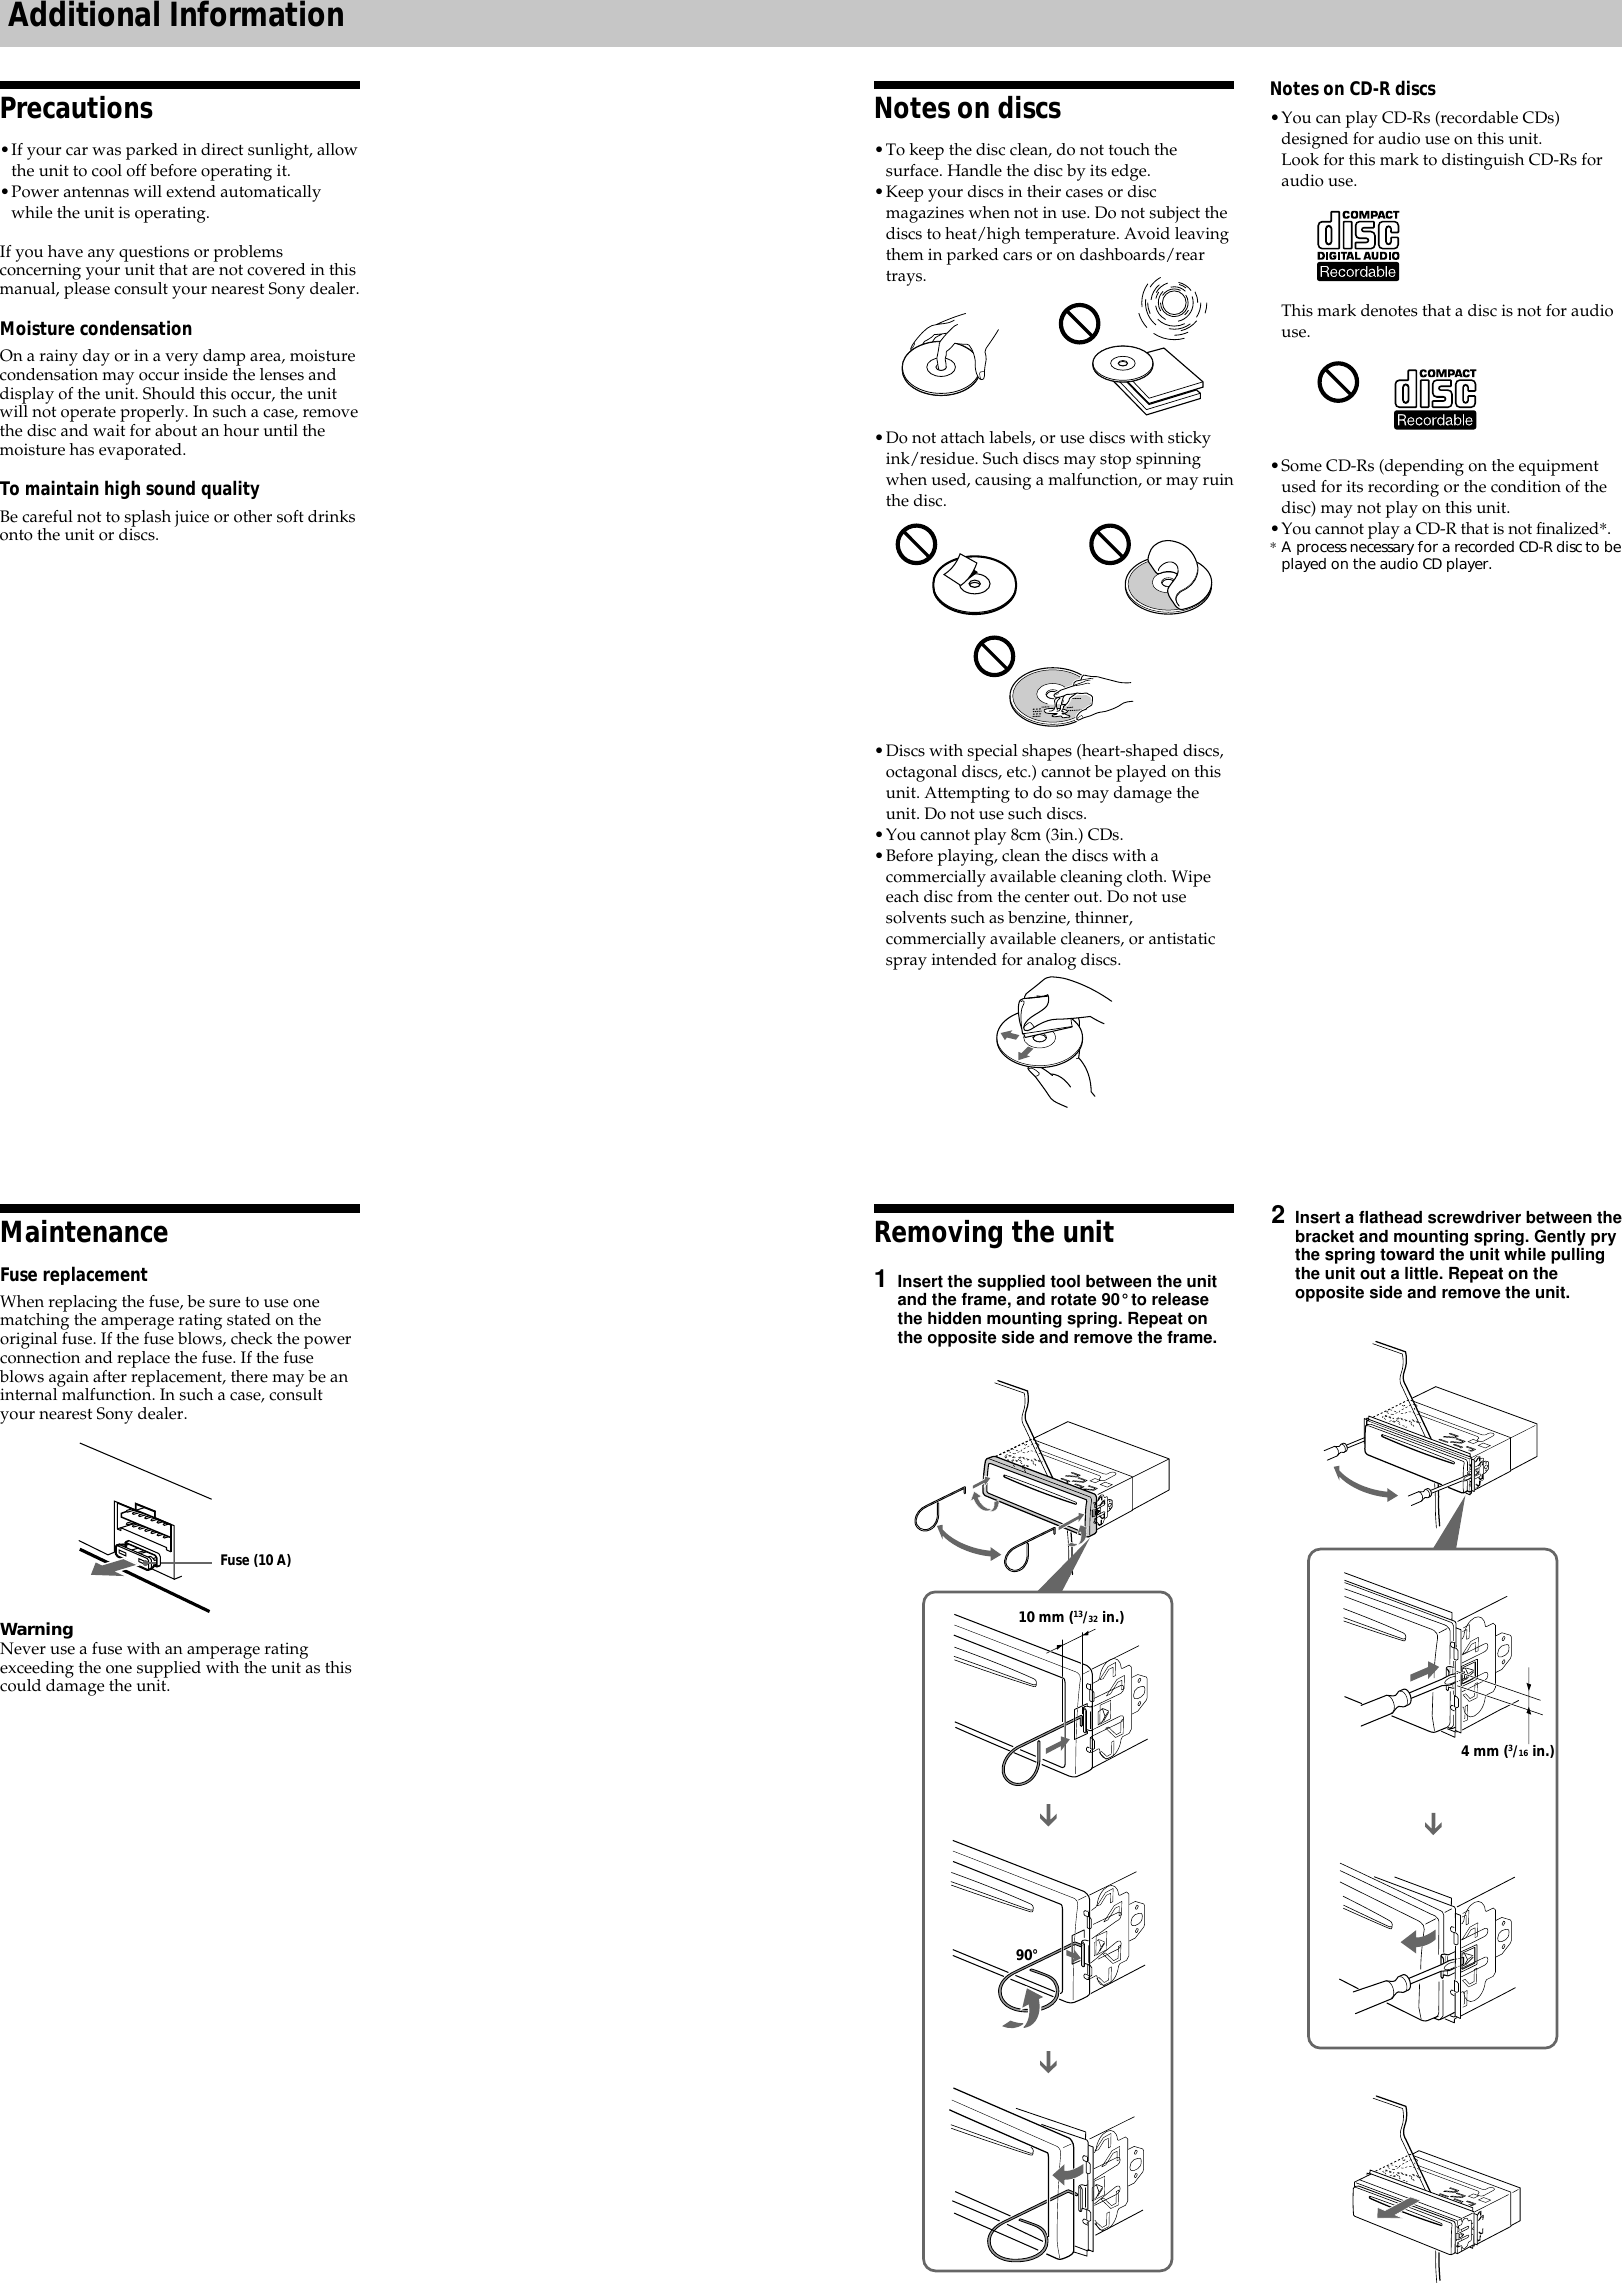 Sony Cdx L250 Wiring Diagram For Schematic Diagrams Pioneer Cd Player On Xplod Gt210 Users Manual Deh